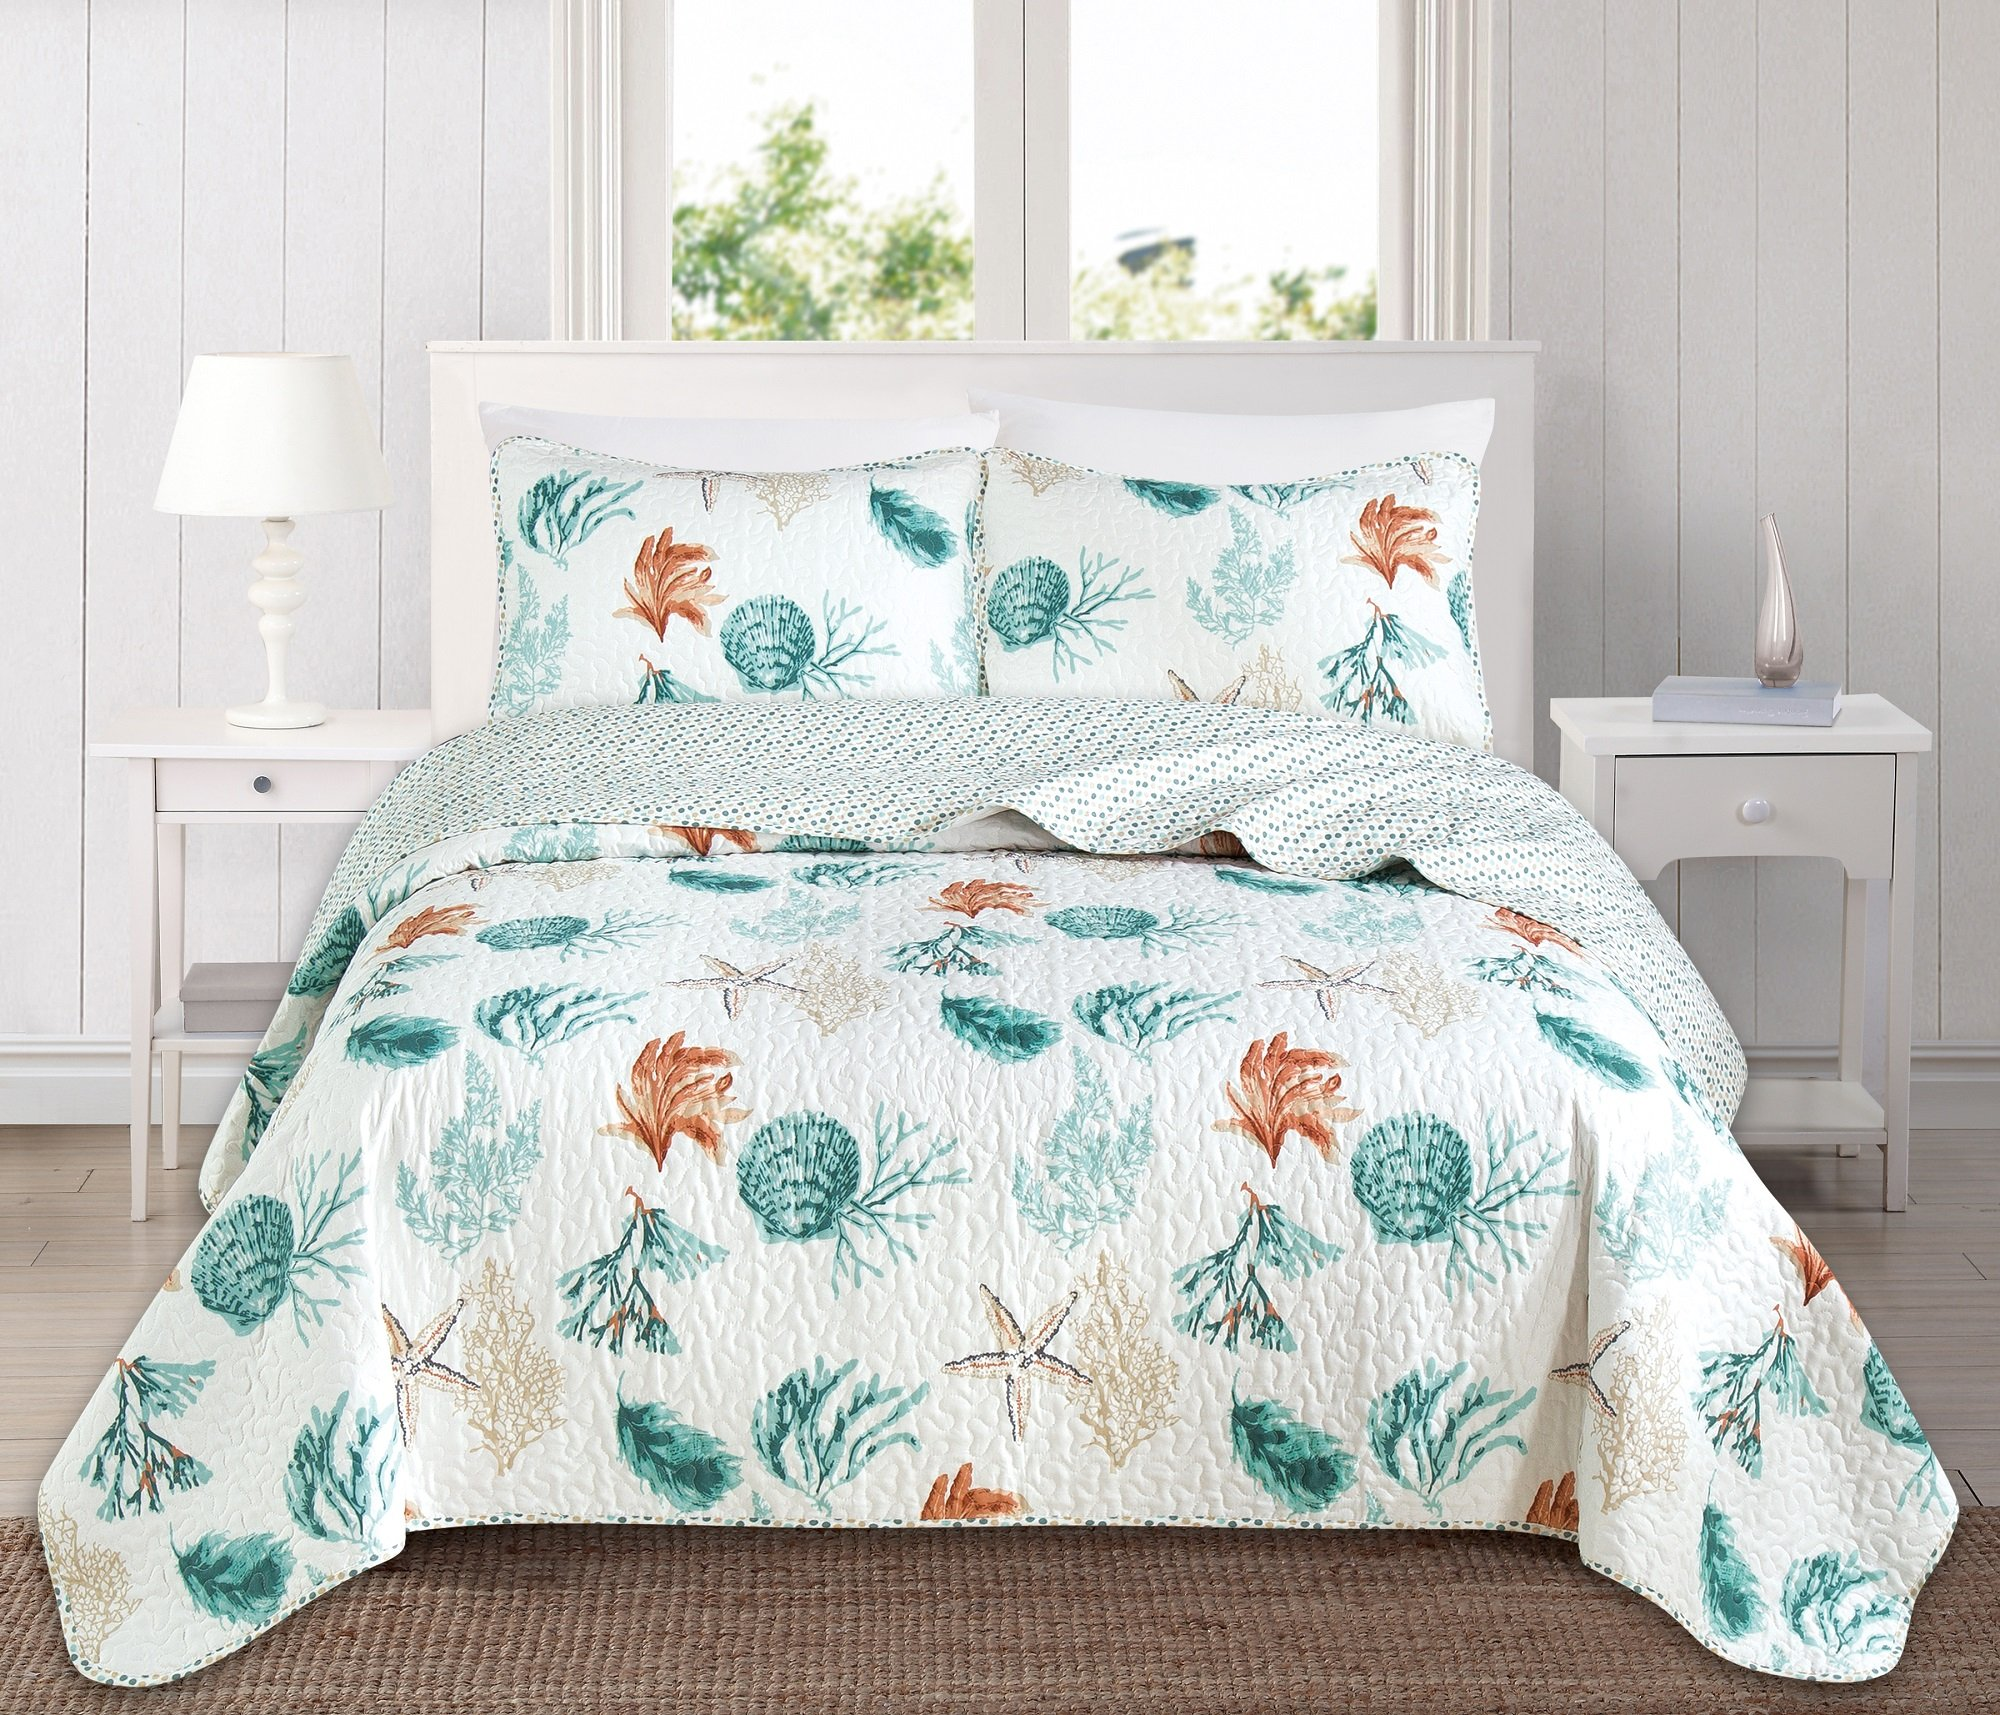 Great Bay Home 3 Piece Quilt Set with Shams. Soft All-Season Cotton Blend Bedspread Featuring Attractive Seascape Images. The Key West Collection By Brand. (King)